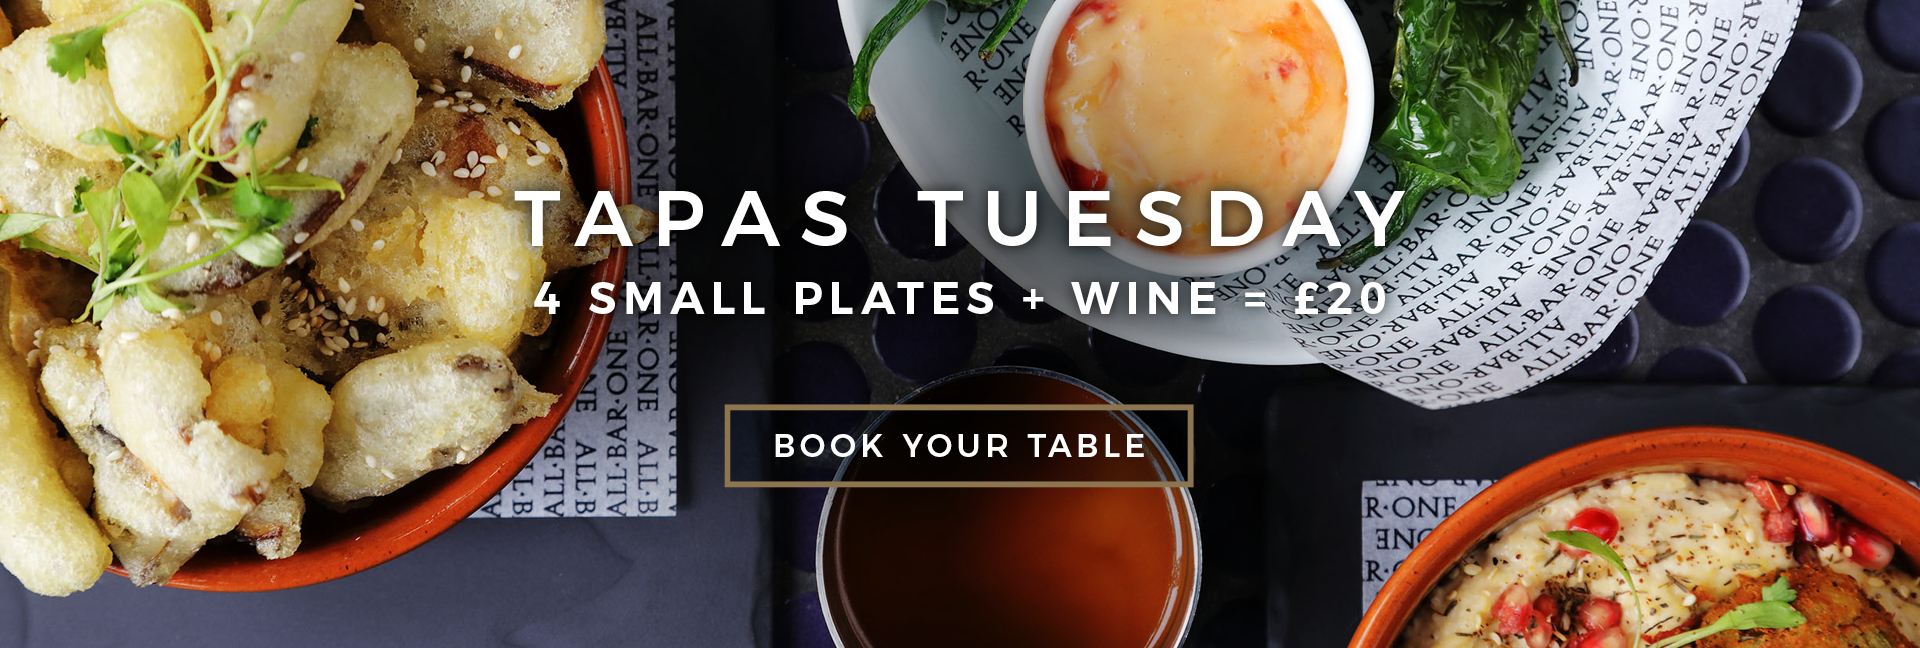 Tapas Tuesday at All Bar One Battersea - Book now